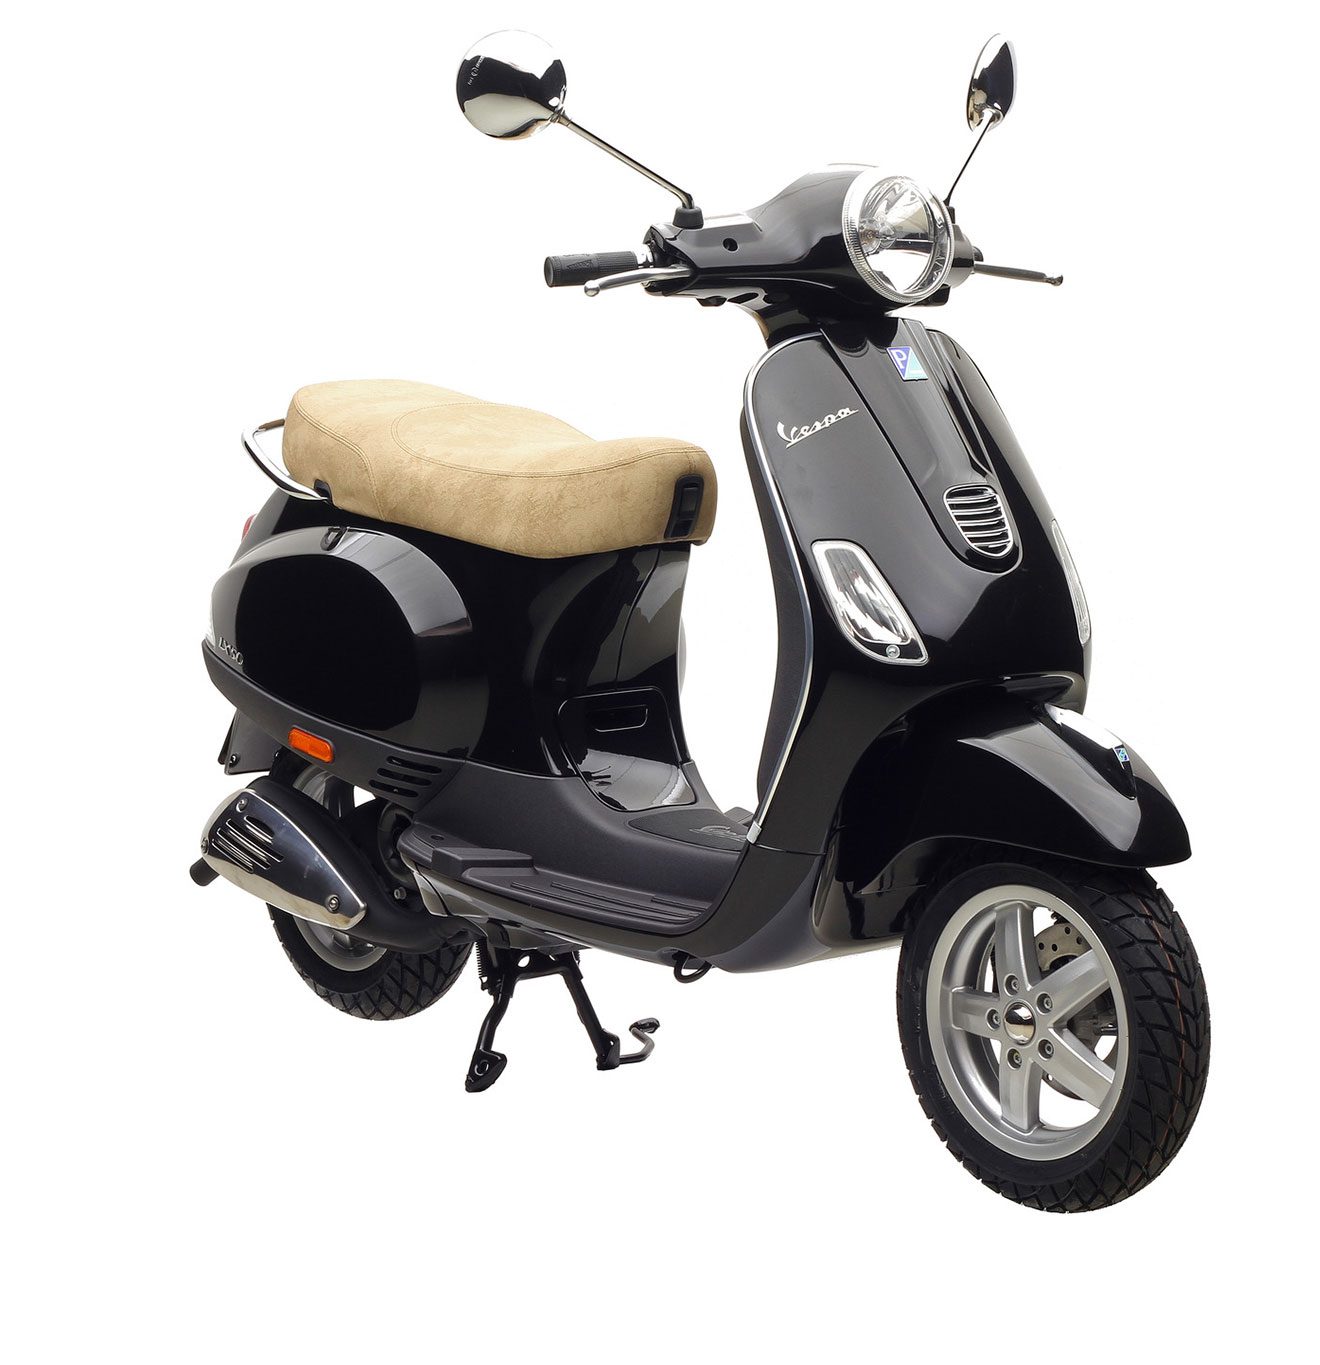 piaggio vespa lx 50 2 takt 45km h schwarz 49ccm ebay. Black Bedroom Furniture Sets. Home Design Ideas